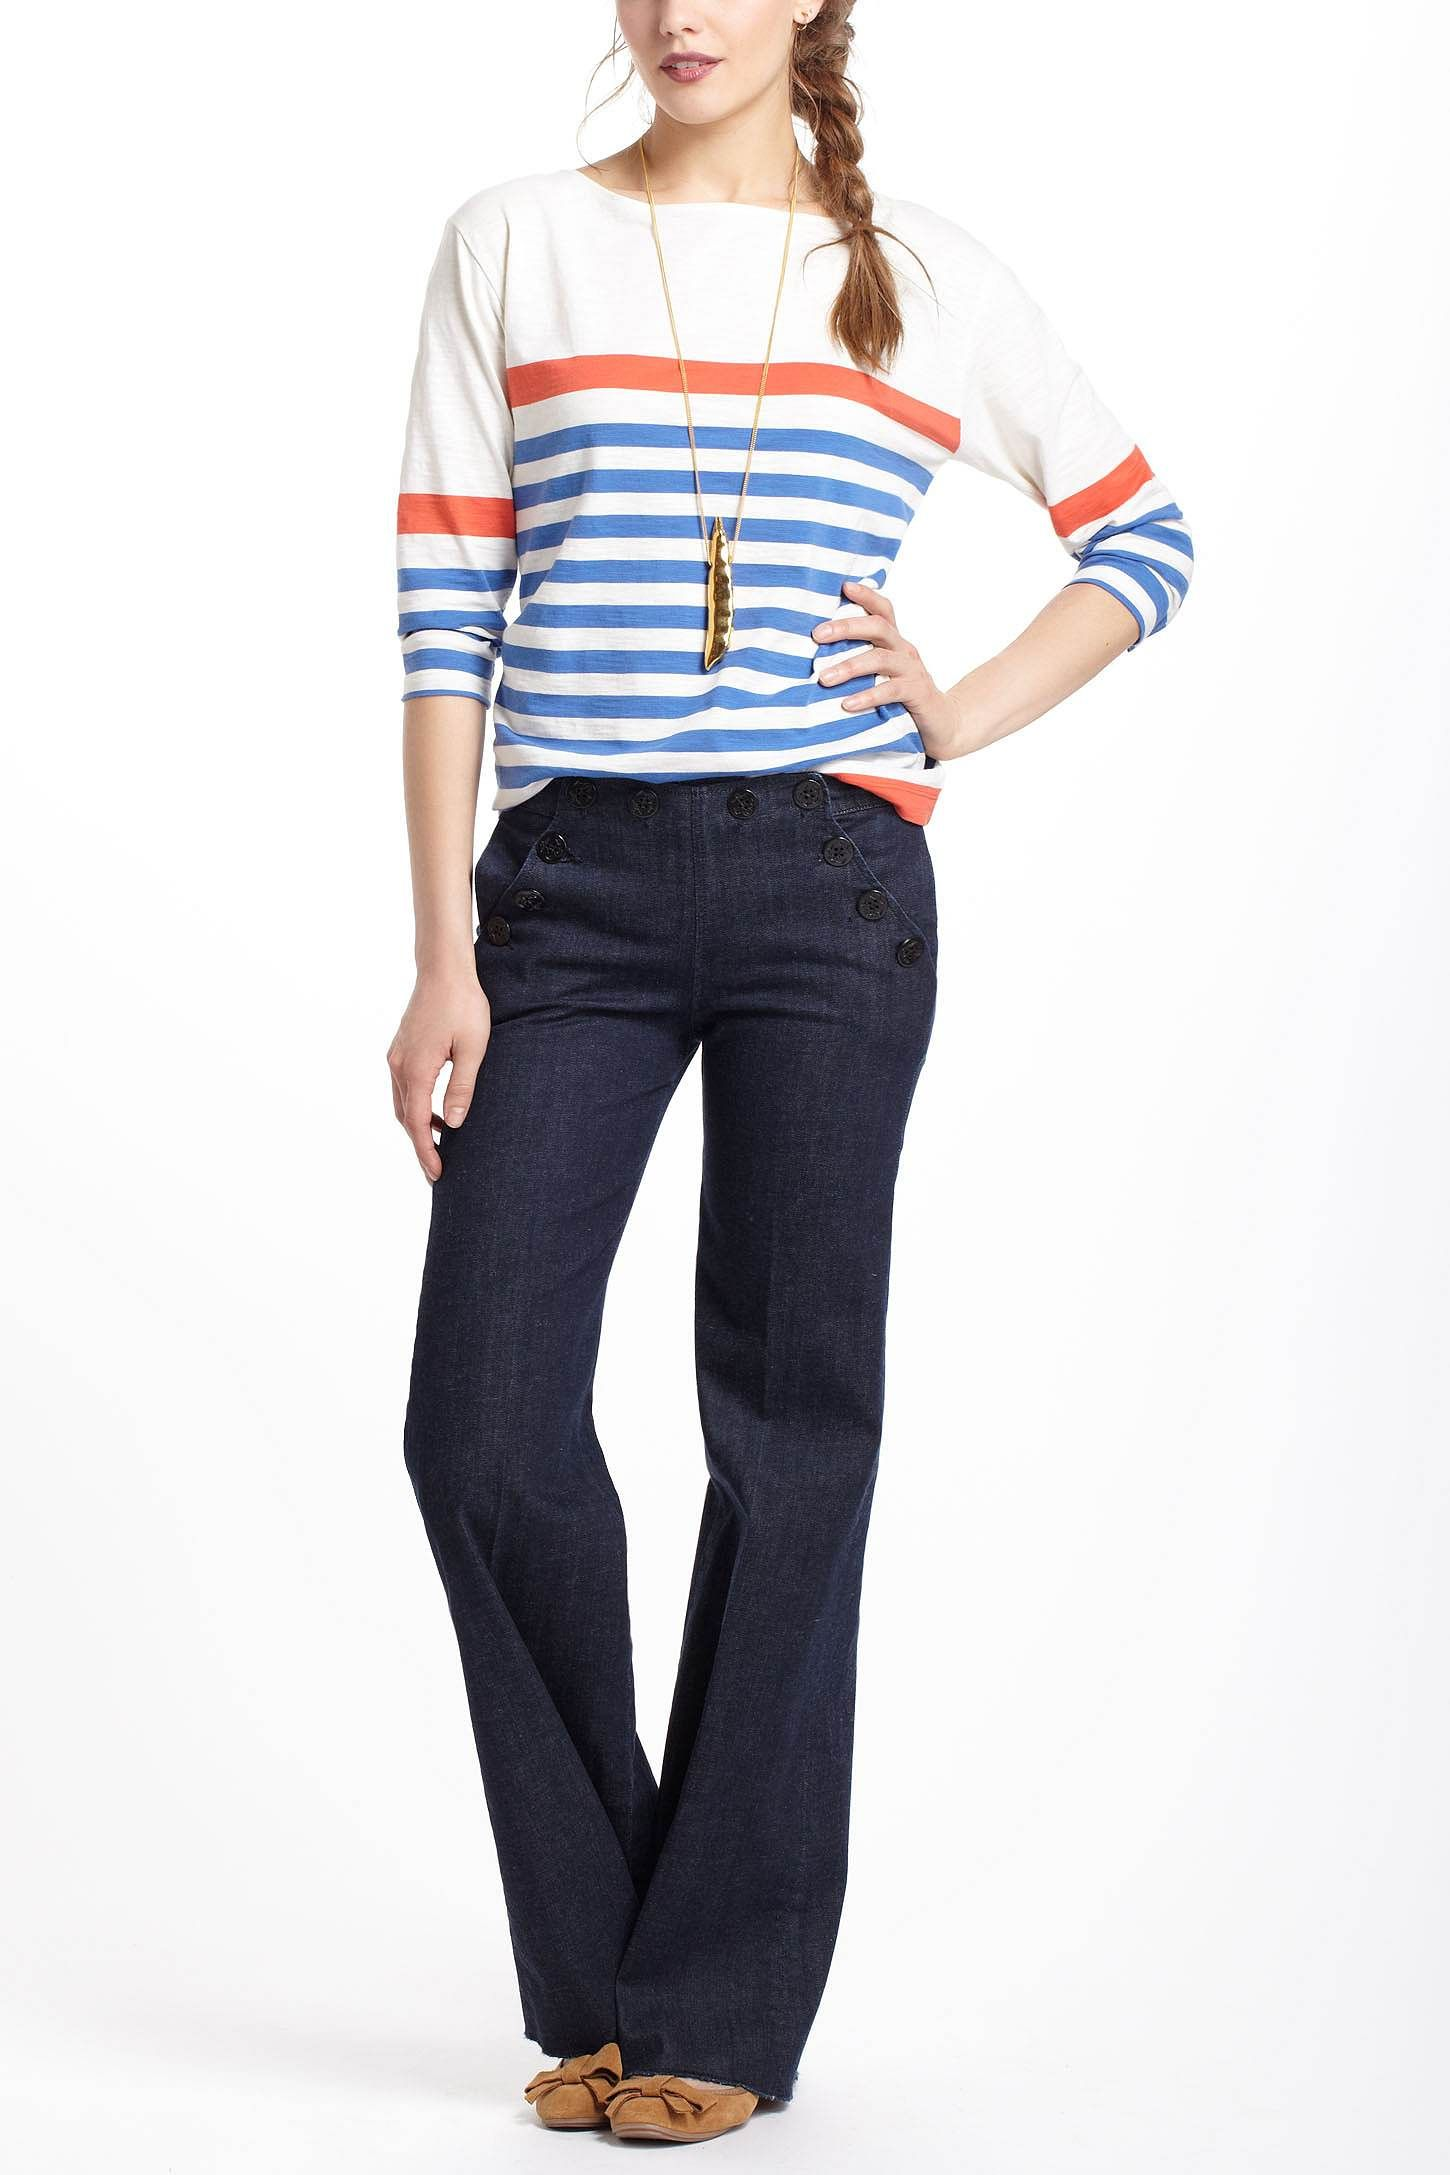 MiH Valencia Trouser / Anthropologie.com